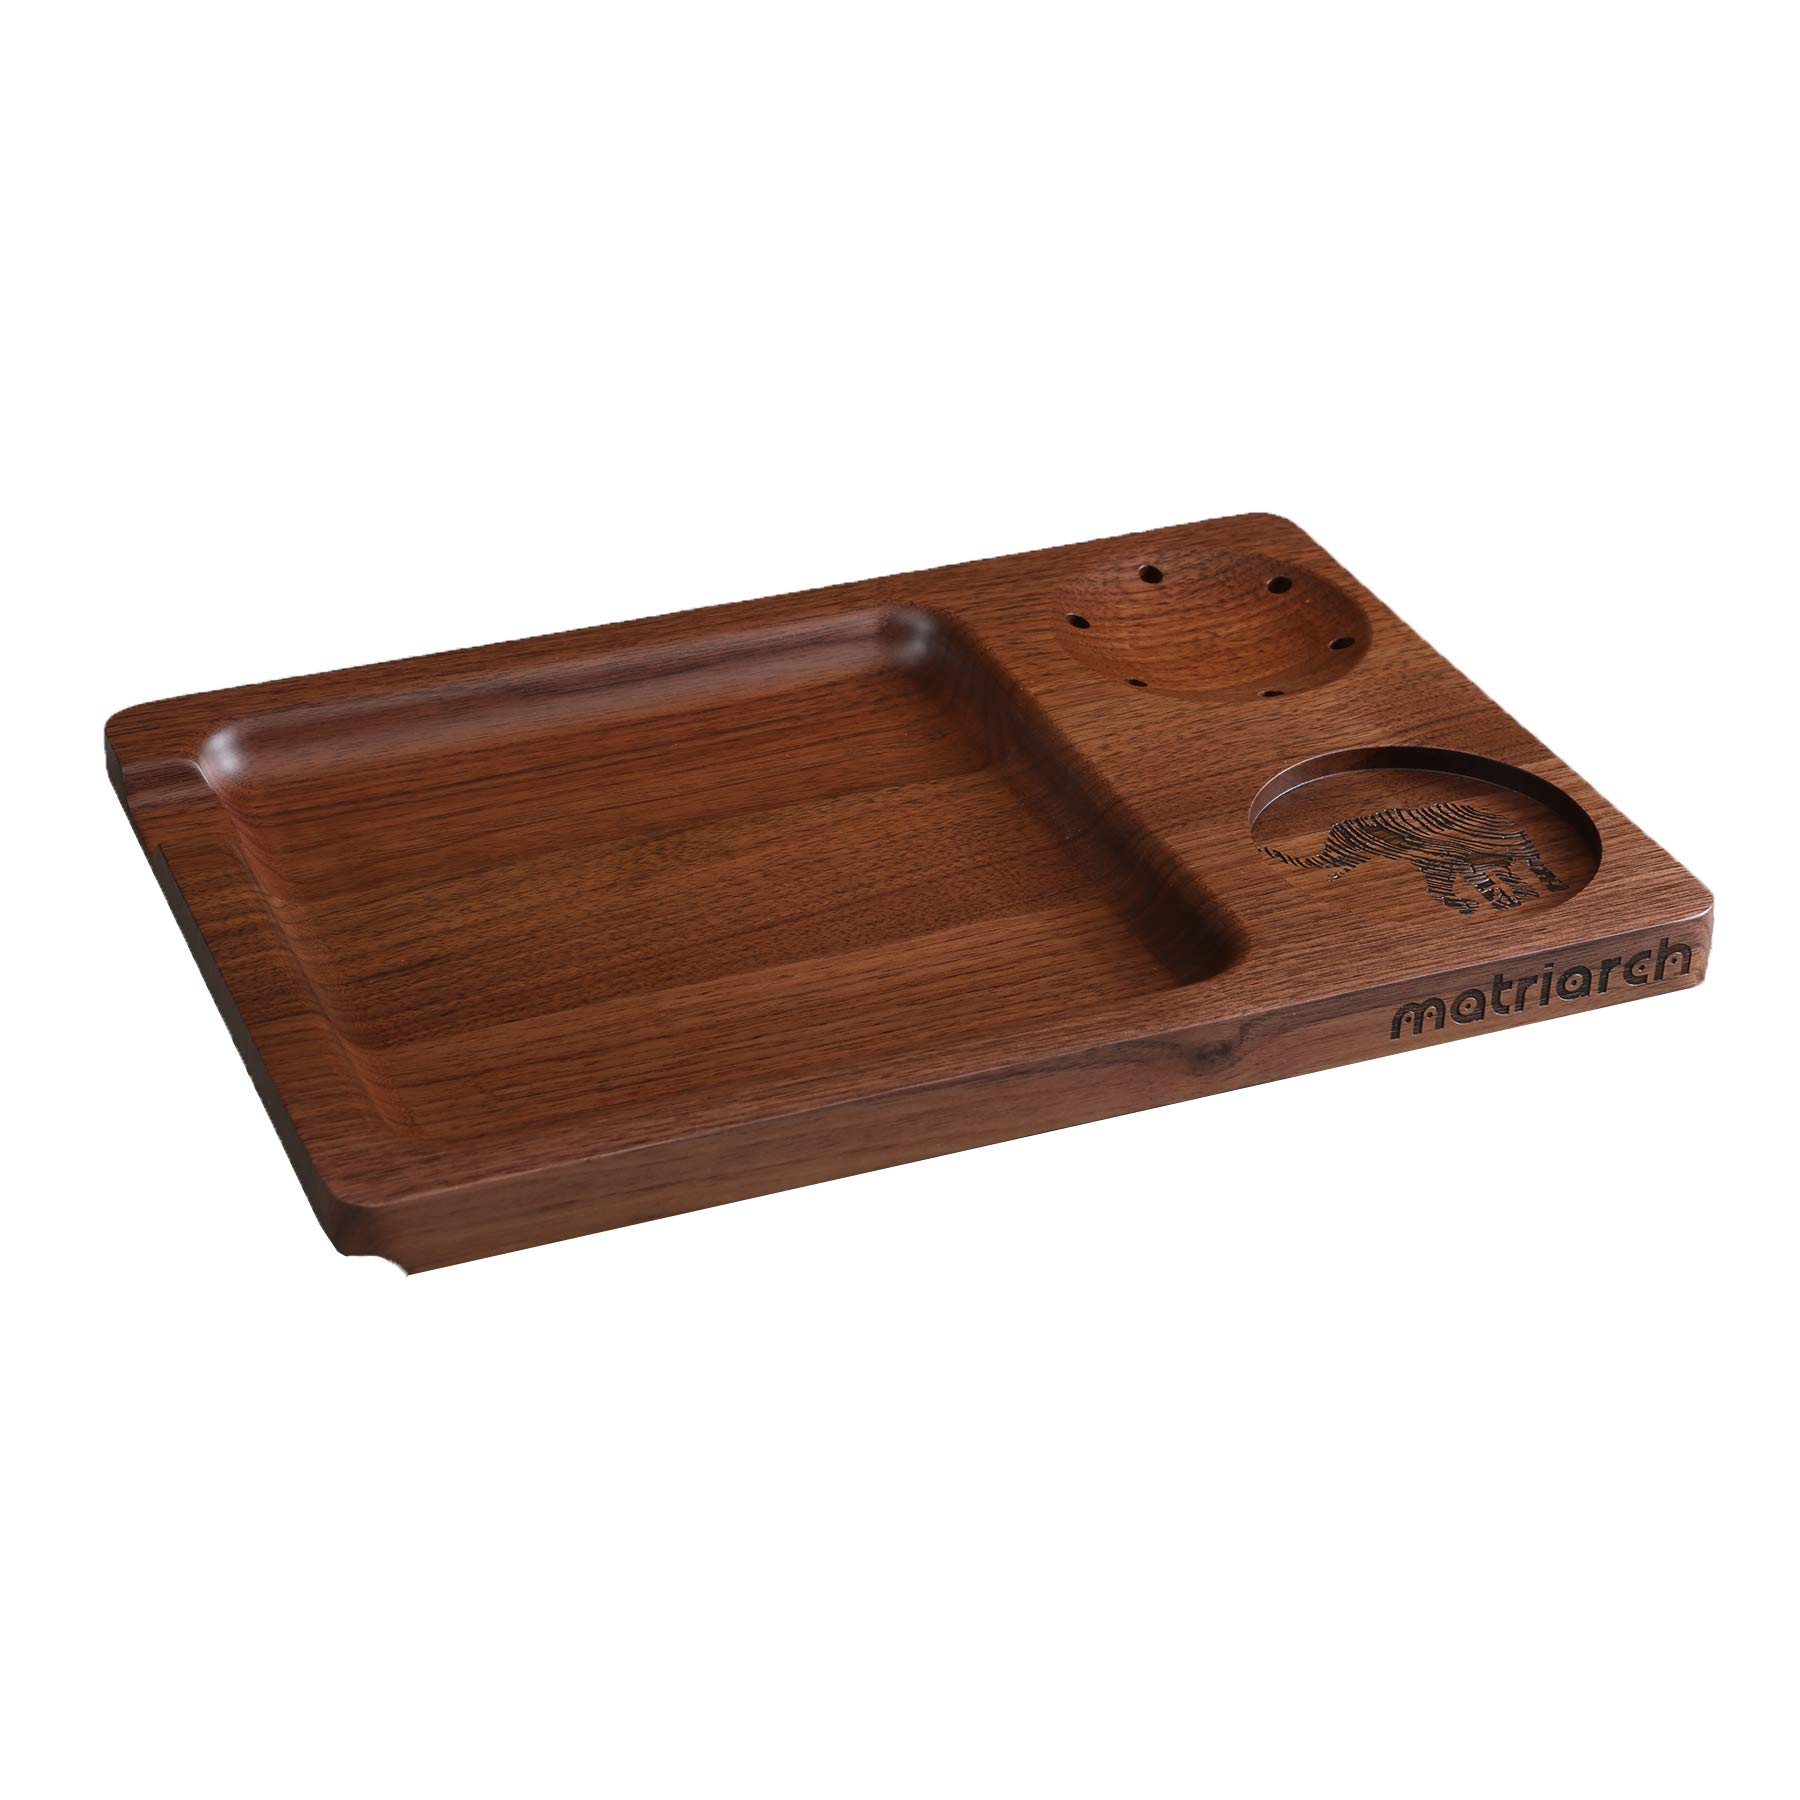 Matriarch's Classic Black Walnut Wood Rolling Tray - Grinder Holder - Versatile Stash Jar/Filter Tip Base - 12'' x 8'' x 0.75'' by Matriarch.LA